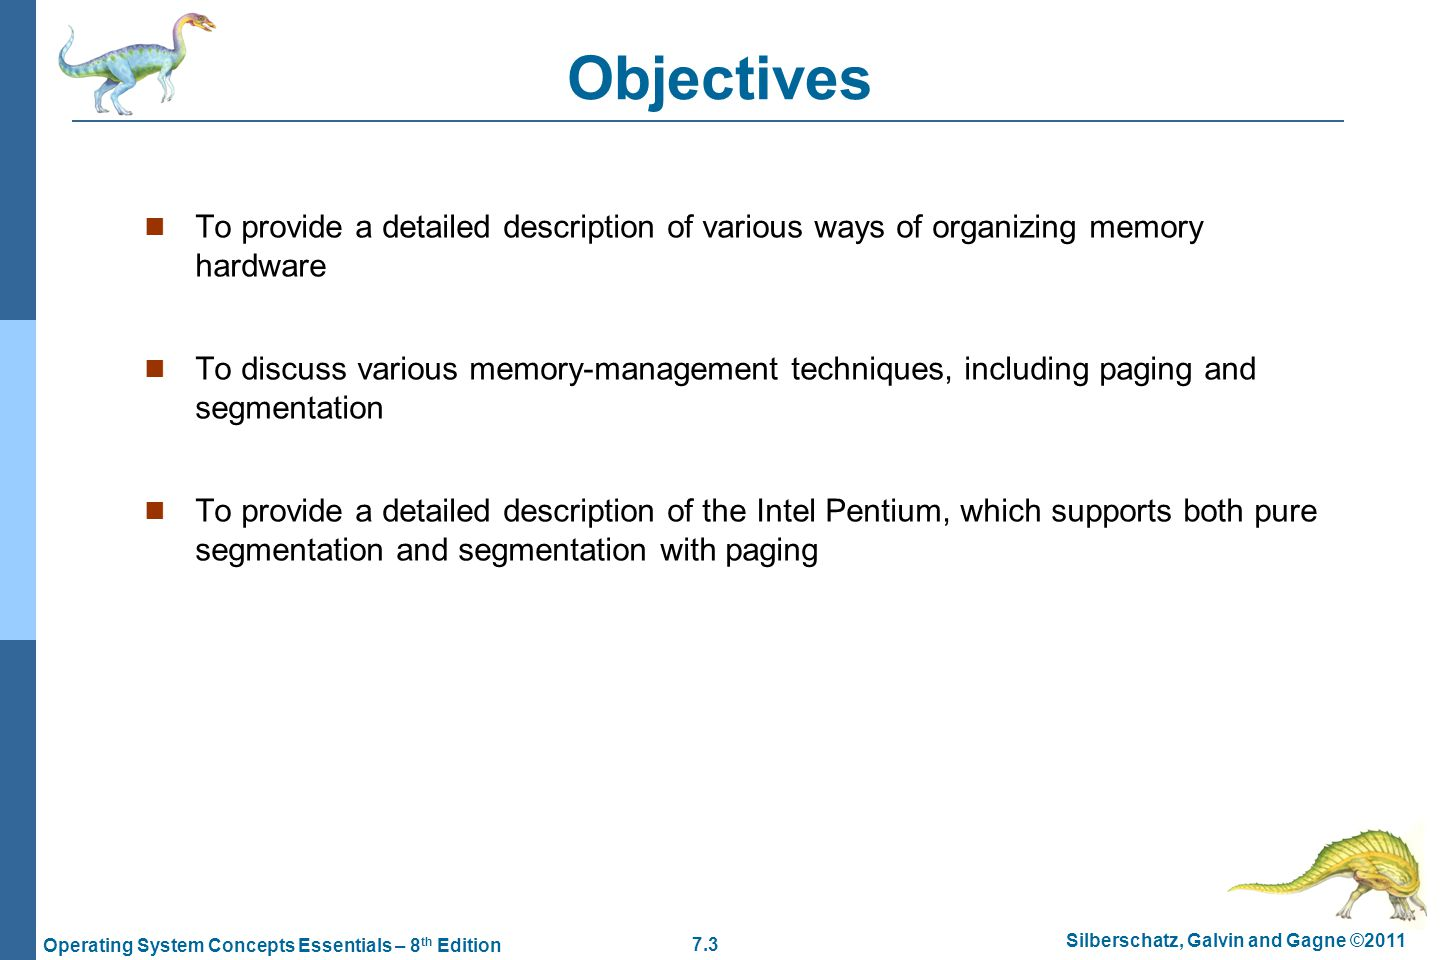 7.3 Silberschatz, Galvin and Gagne ©2011 Operating System Concepts Essentials – 8 th Edition Objectives To provide a detailed description of various ways of organizing memory hardware To discuss various memory-management techniques, including paging and segmentation To provide a detailed description of the Intel Pentium, which supports both pure segmentation and segmentation with paging